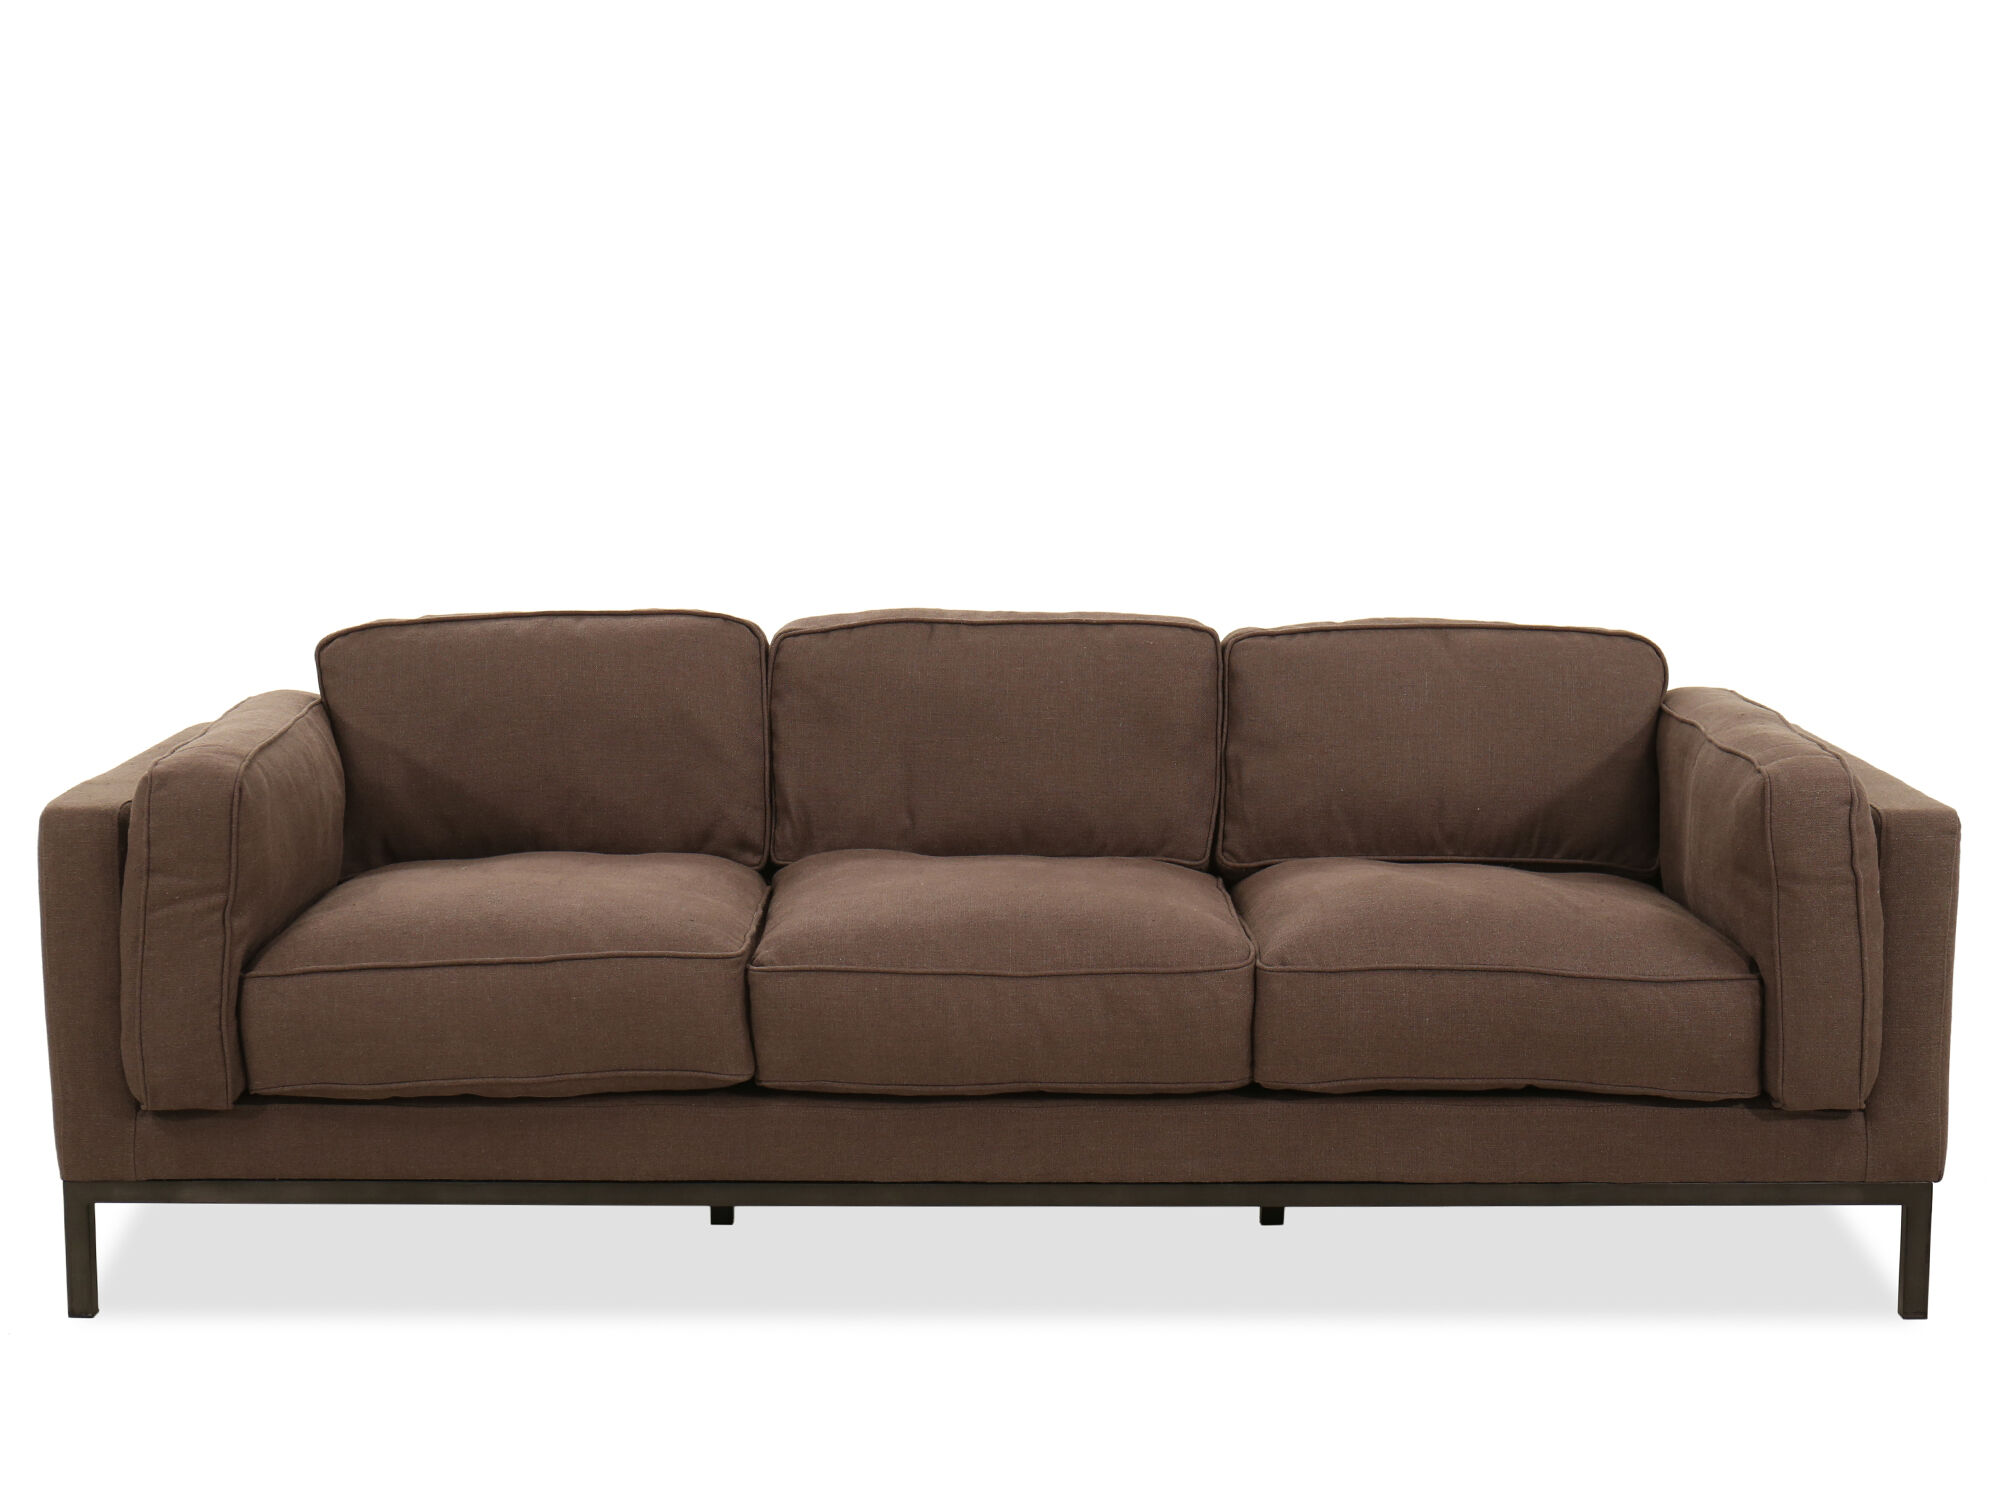 glam sofa set simply sofas direct couches mathis brothers furniture stores low profile three seater in brown